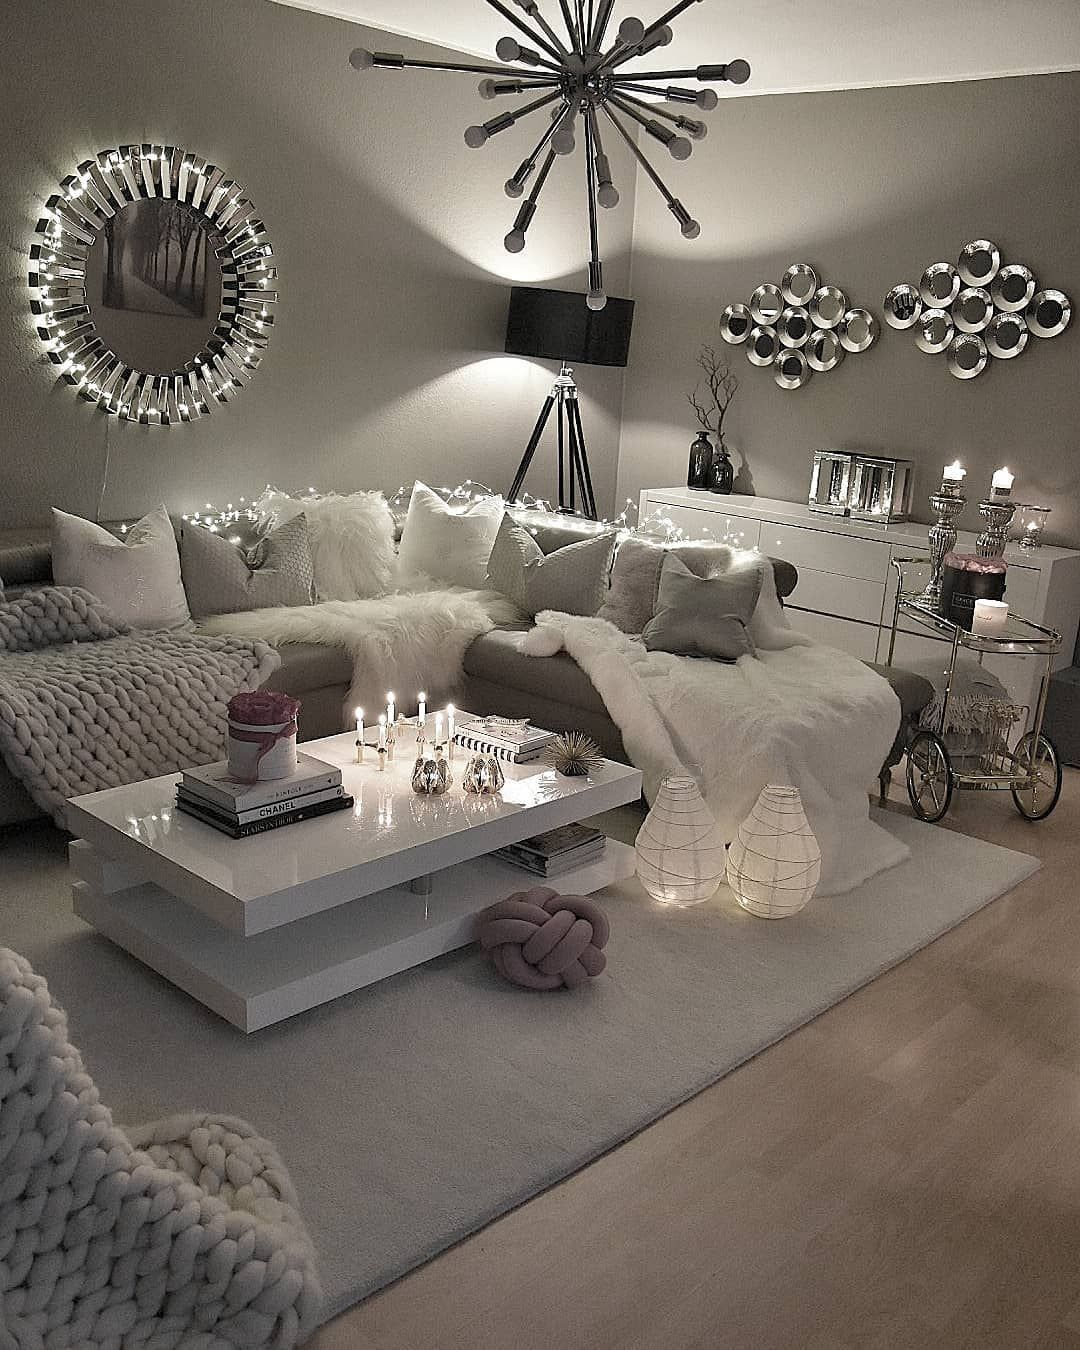 Inspiring Sitting Room Decor Ideas For Inviting And Cozy: 54 Reading Room Decor Inspiration To Make You Cozy